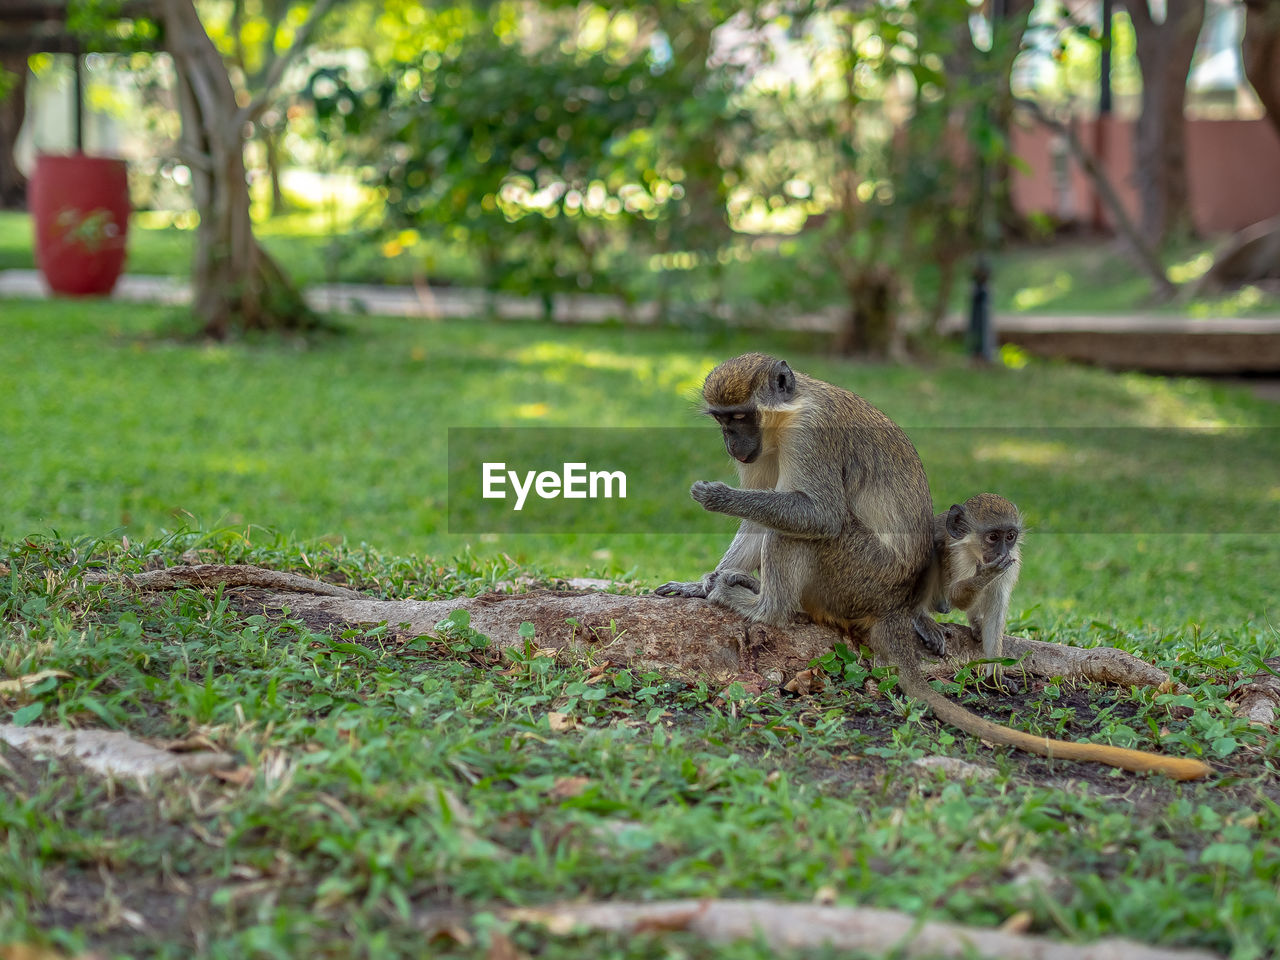 plant, mammal, animal, animal themes, animals in the wild, land, one animal, grass, field, day, tree, animal wildlife, vertebrate, nature, primate, selective focus, no people, monkey, sitting, outdoors